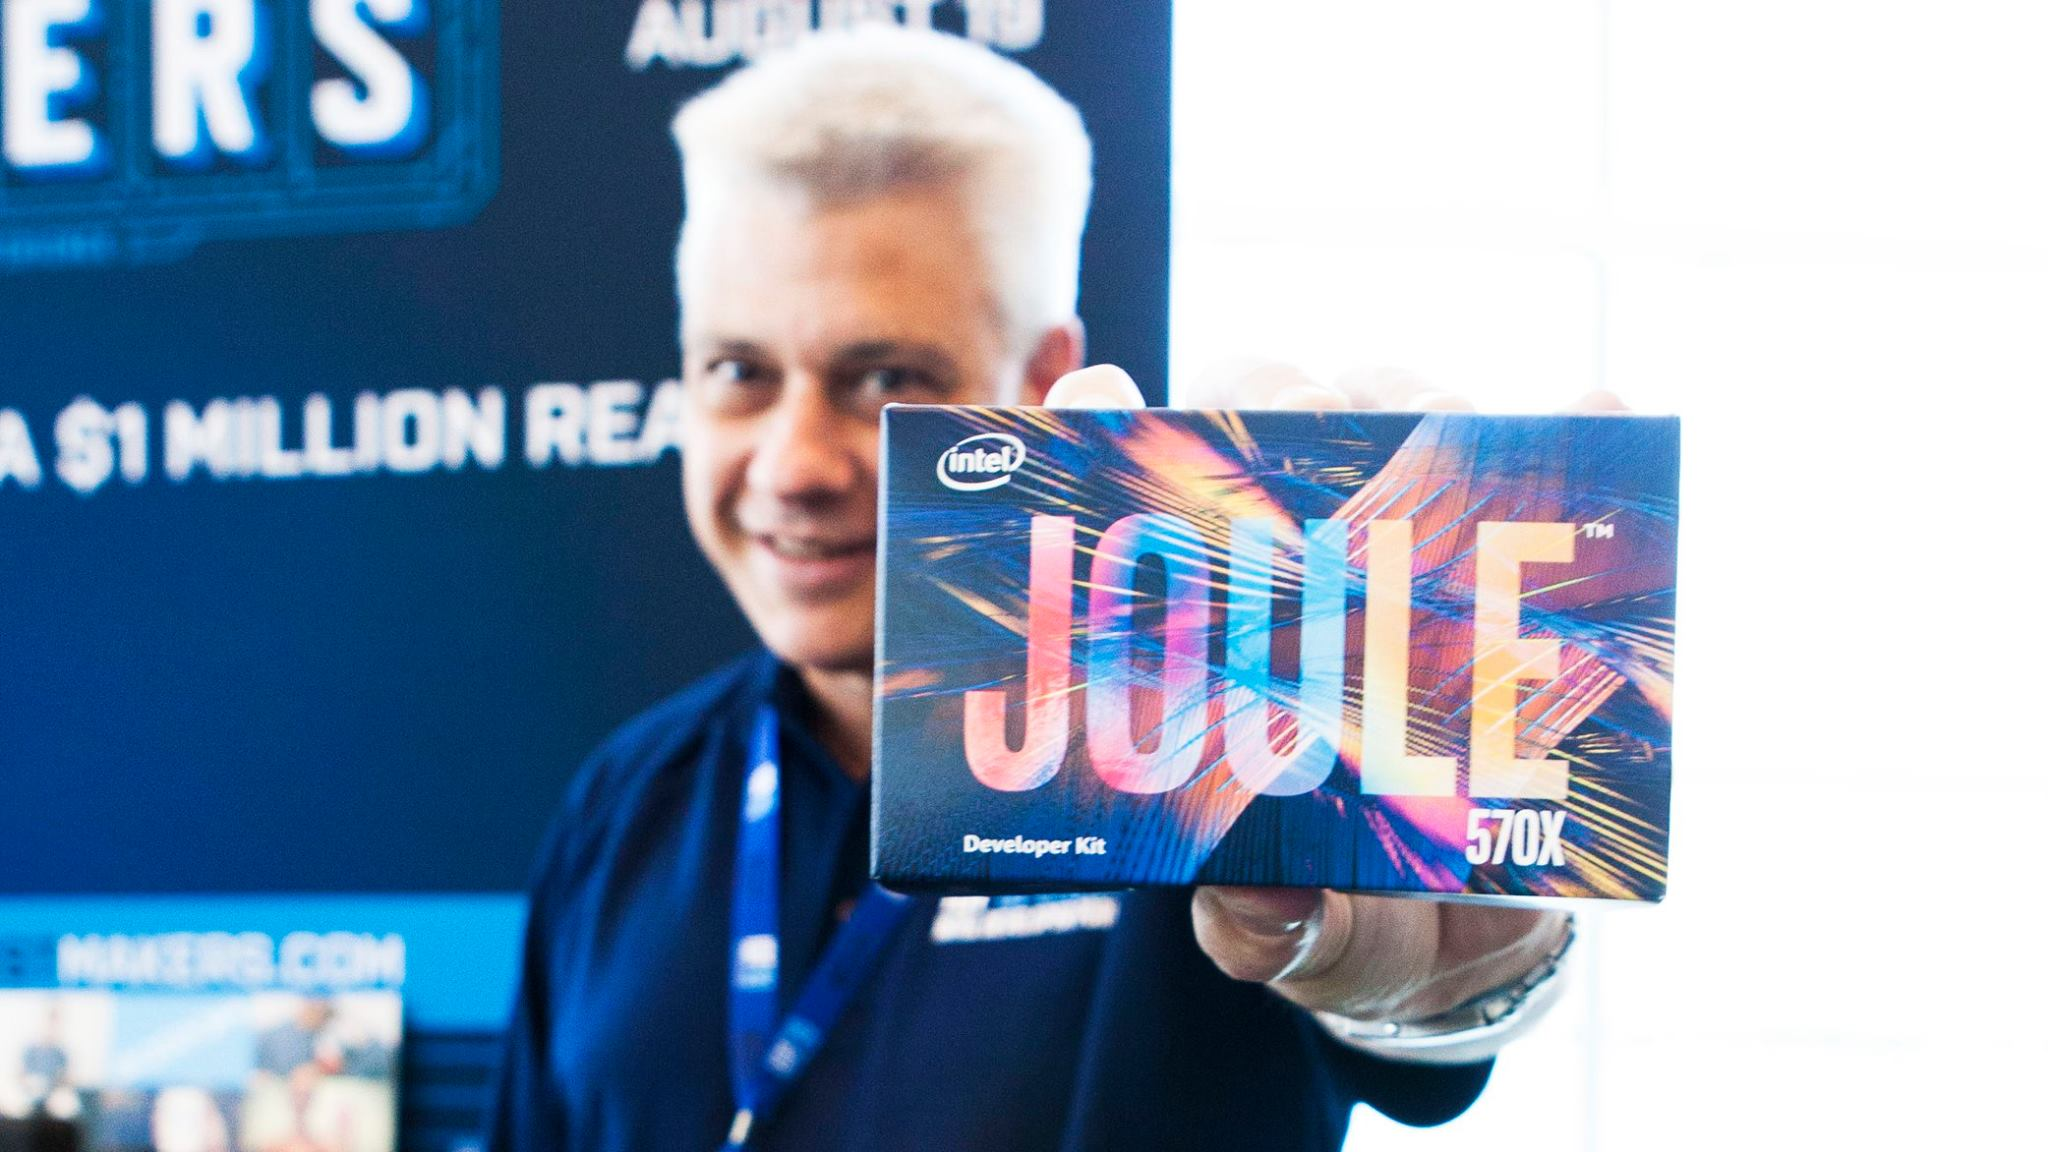 Intel James Jackson e Intel Joule